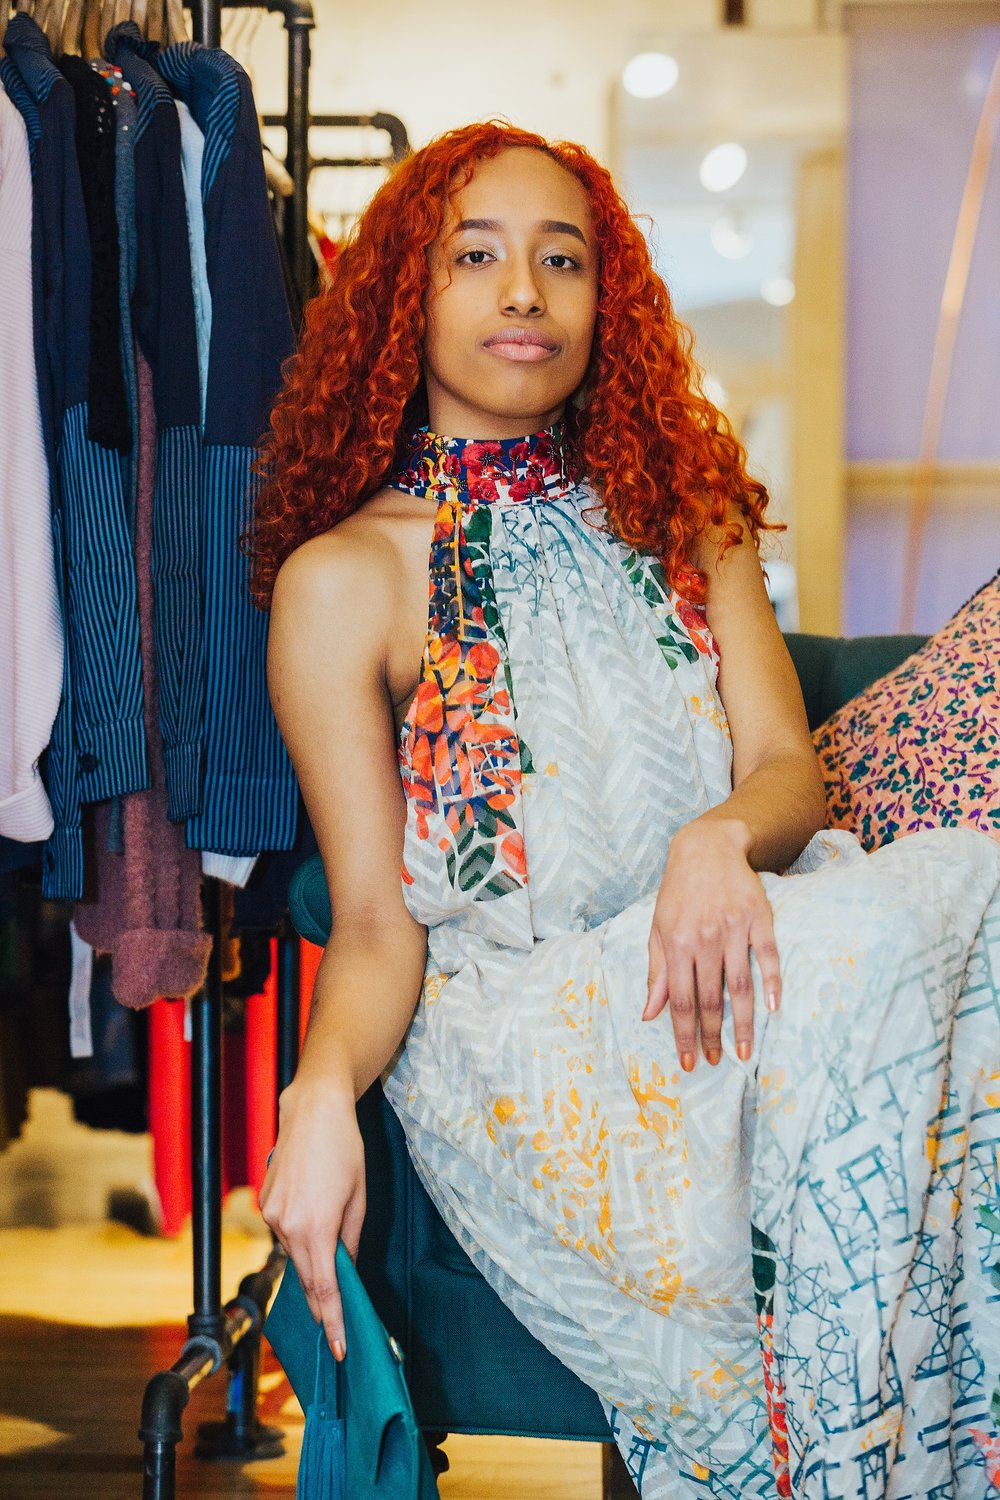 Joe_Mac_Creative_Anthropologie_spring_fashion_show_Philladelphia__0046.jpg